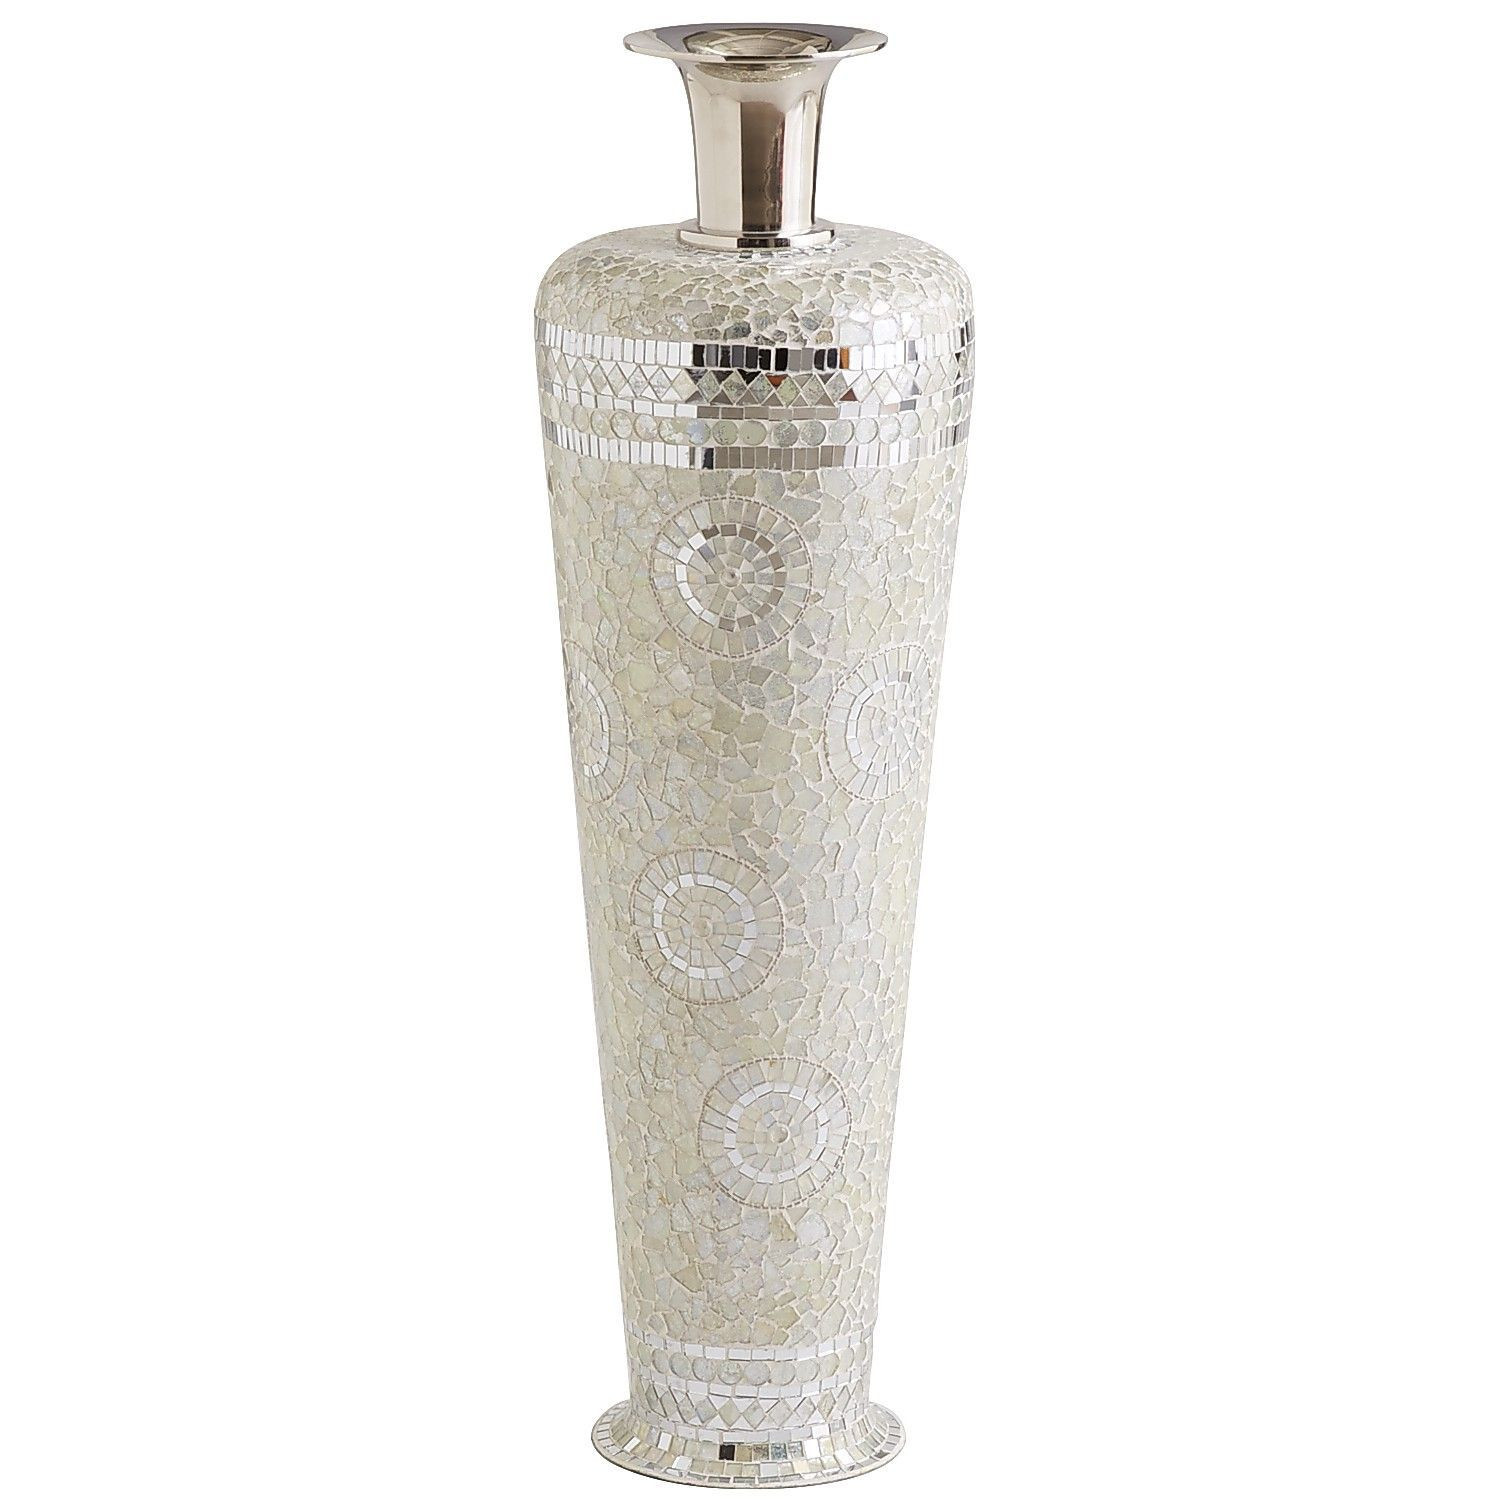 Large Silver Mosaic Vase Of Decmode Round Silhouette Ceramic Vase 71732 Intended for Silver White Mosaic Vase